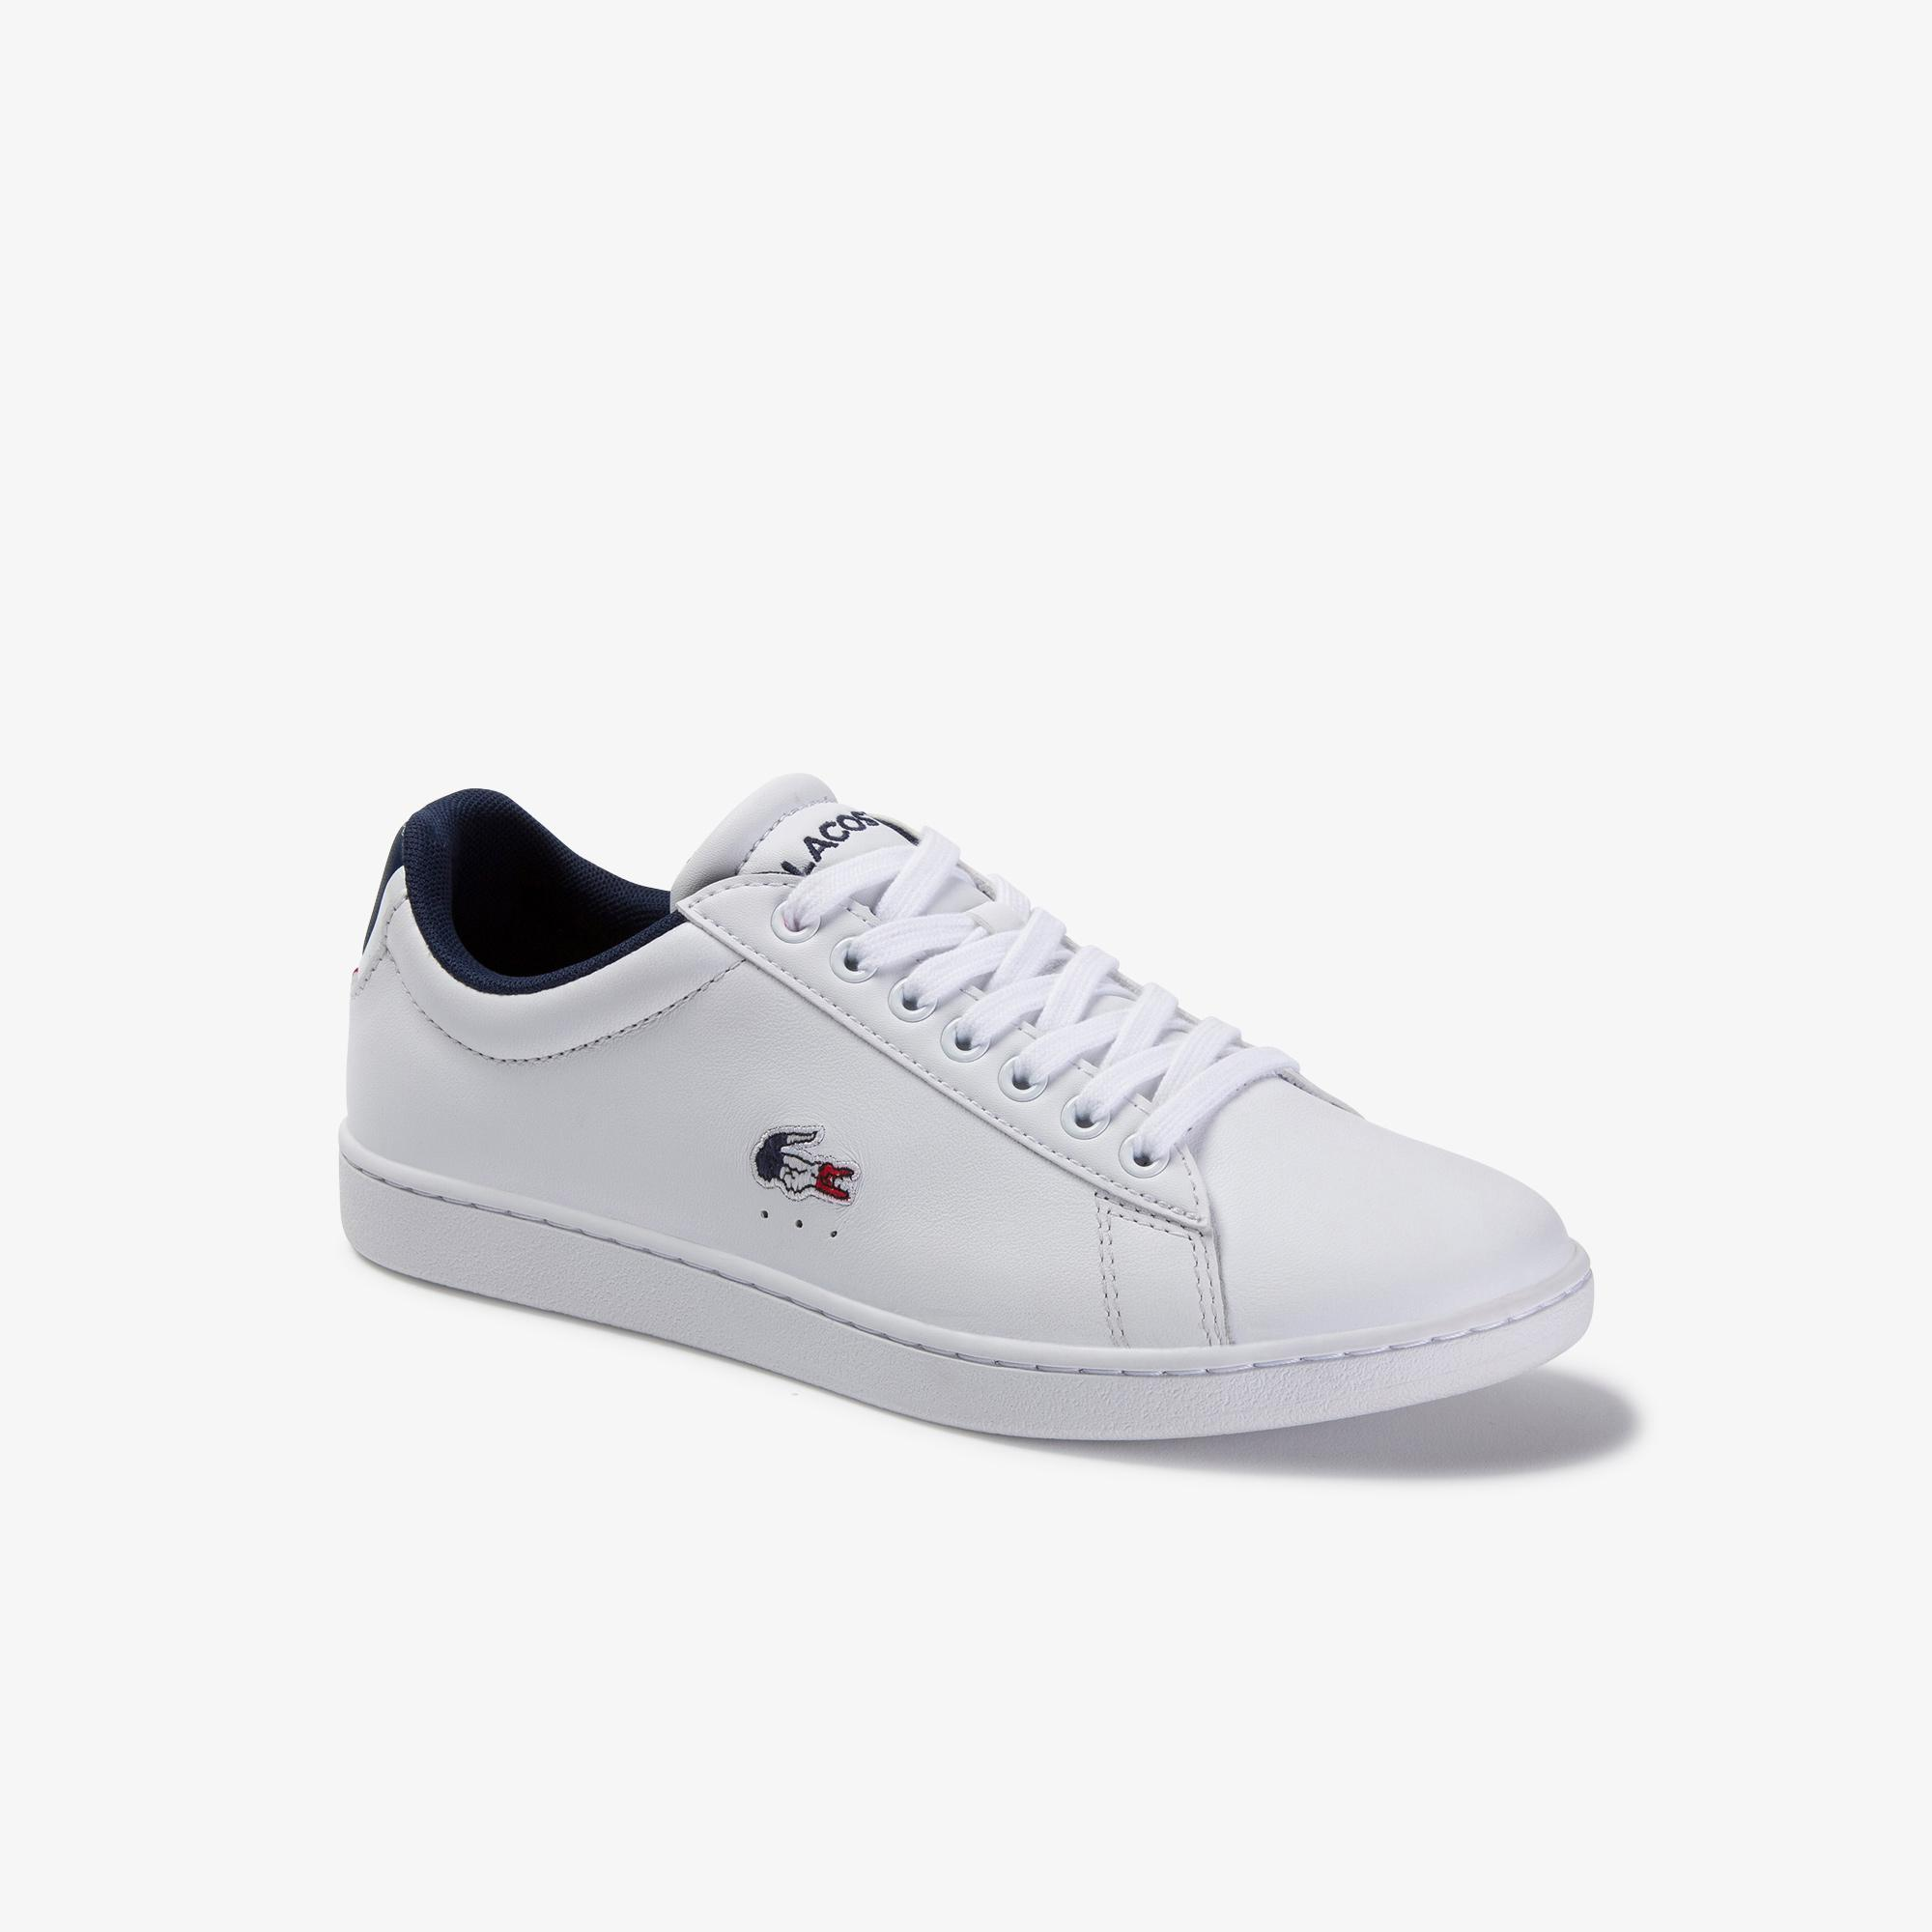 Lacoste Women's Carnaby Evo Trı 1 Sfa Shoes